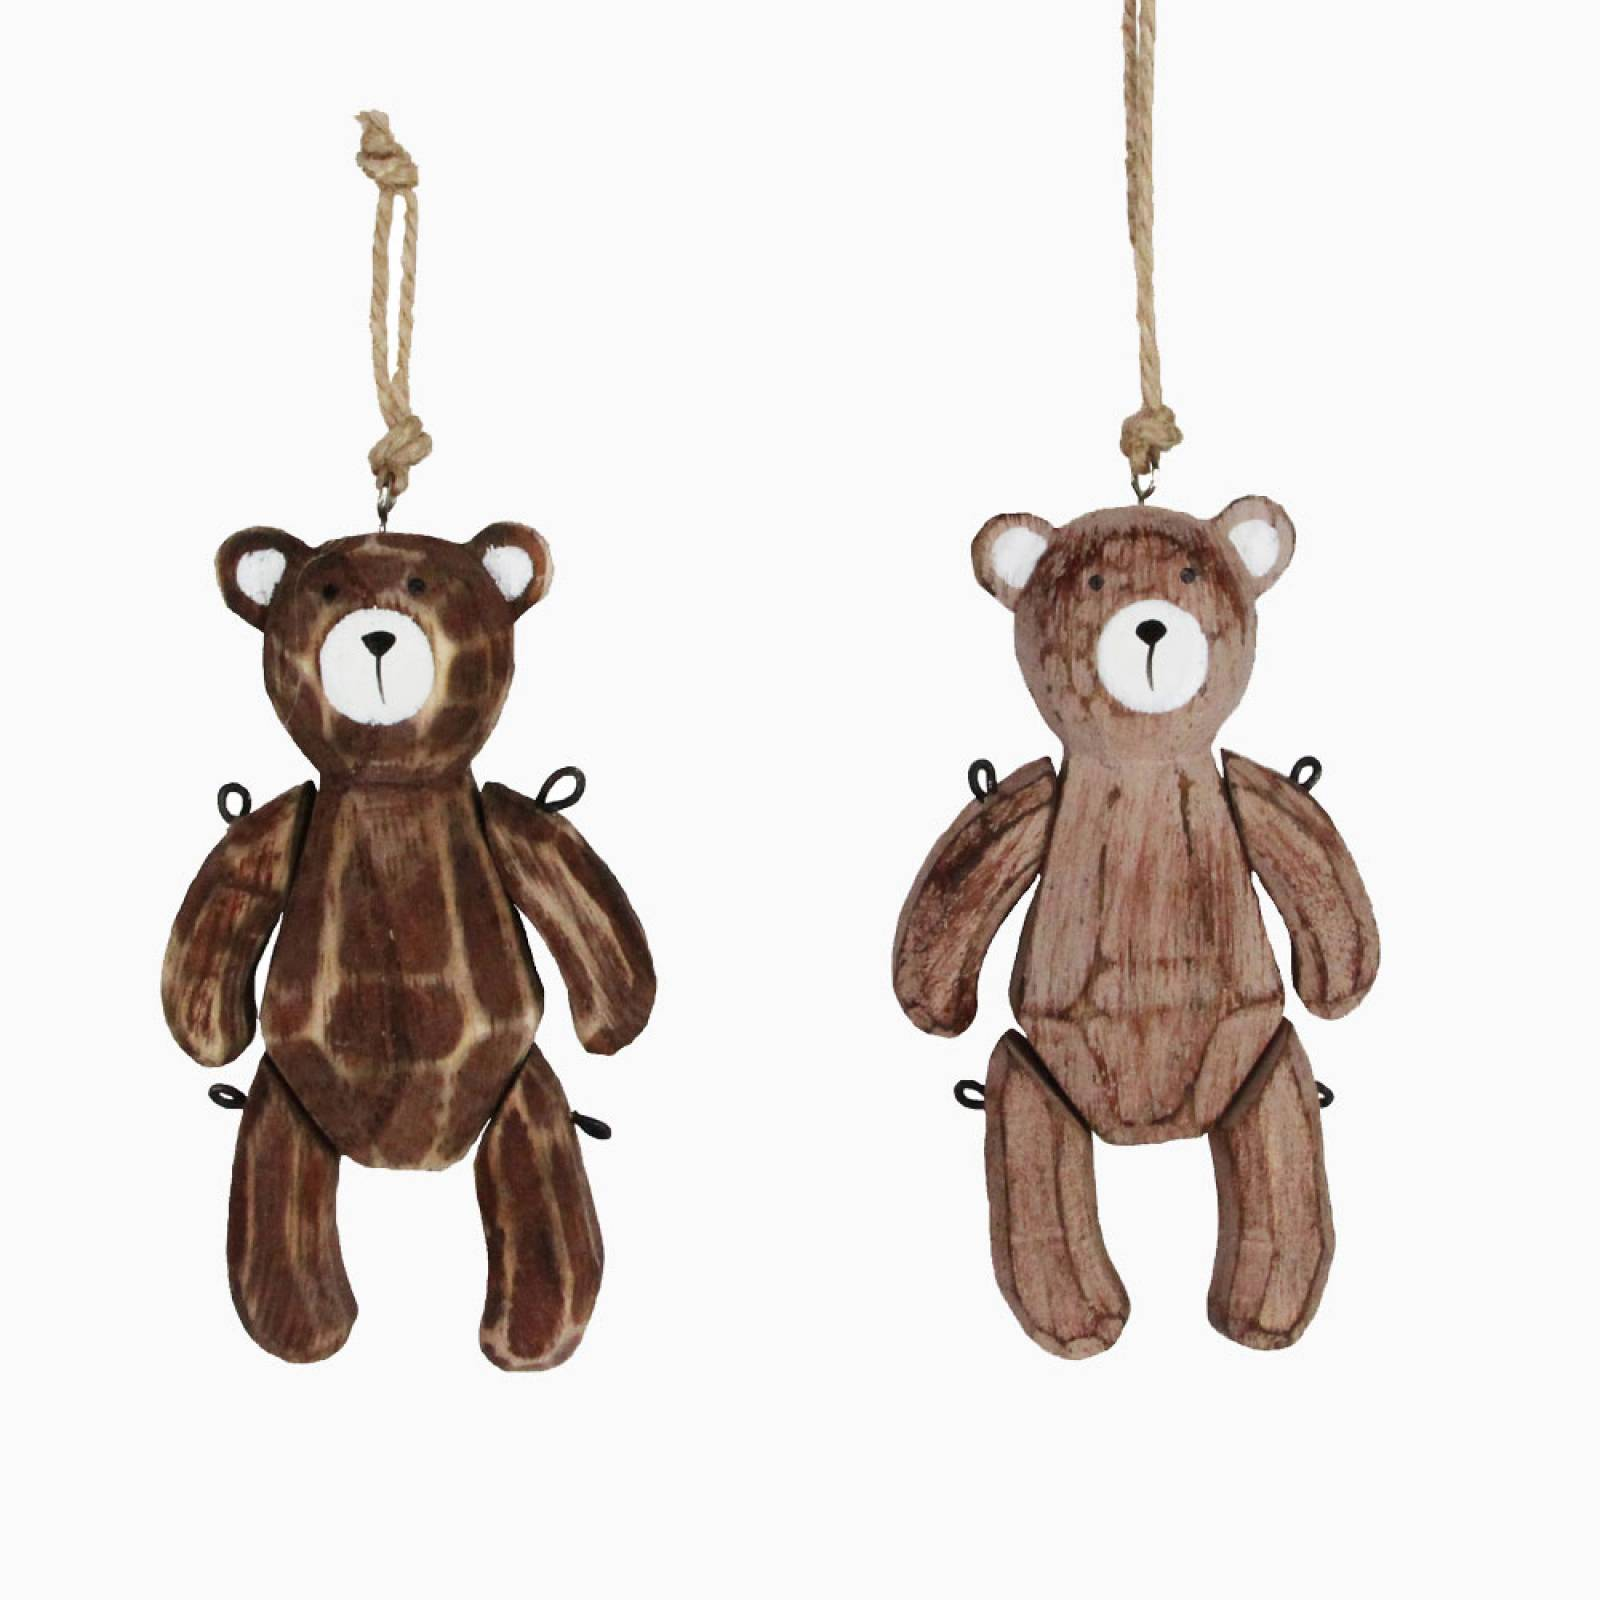 Wooden Jointed Teddy Bear Christmas Decoration By Gisela Graham